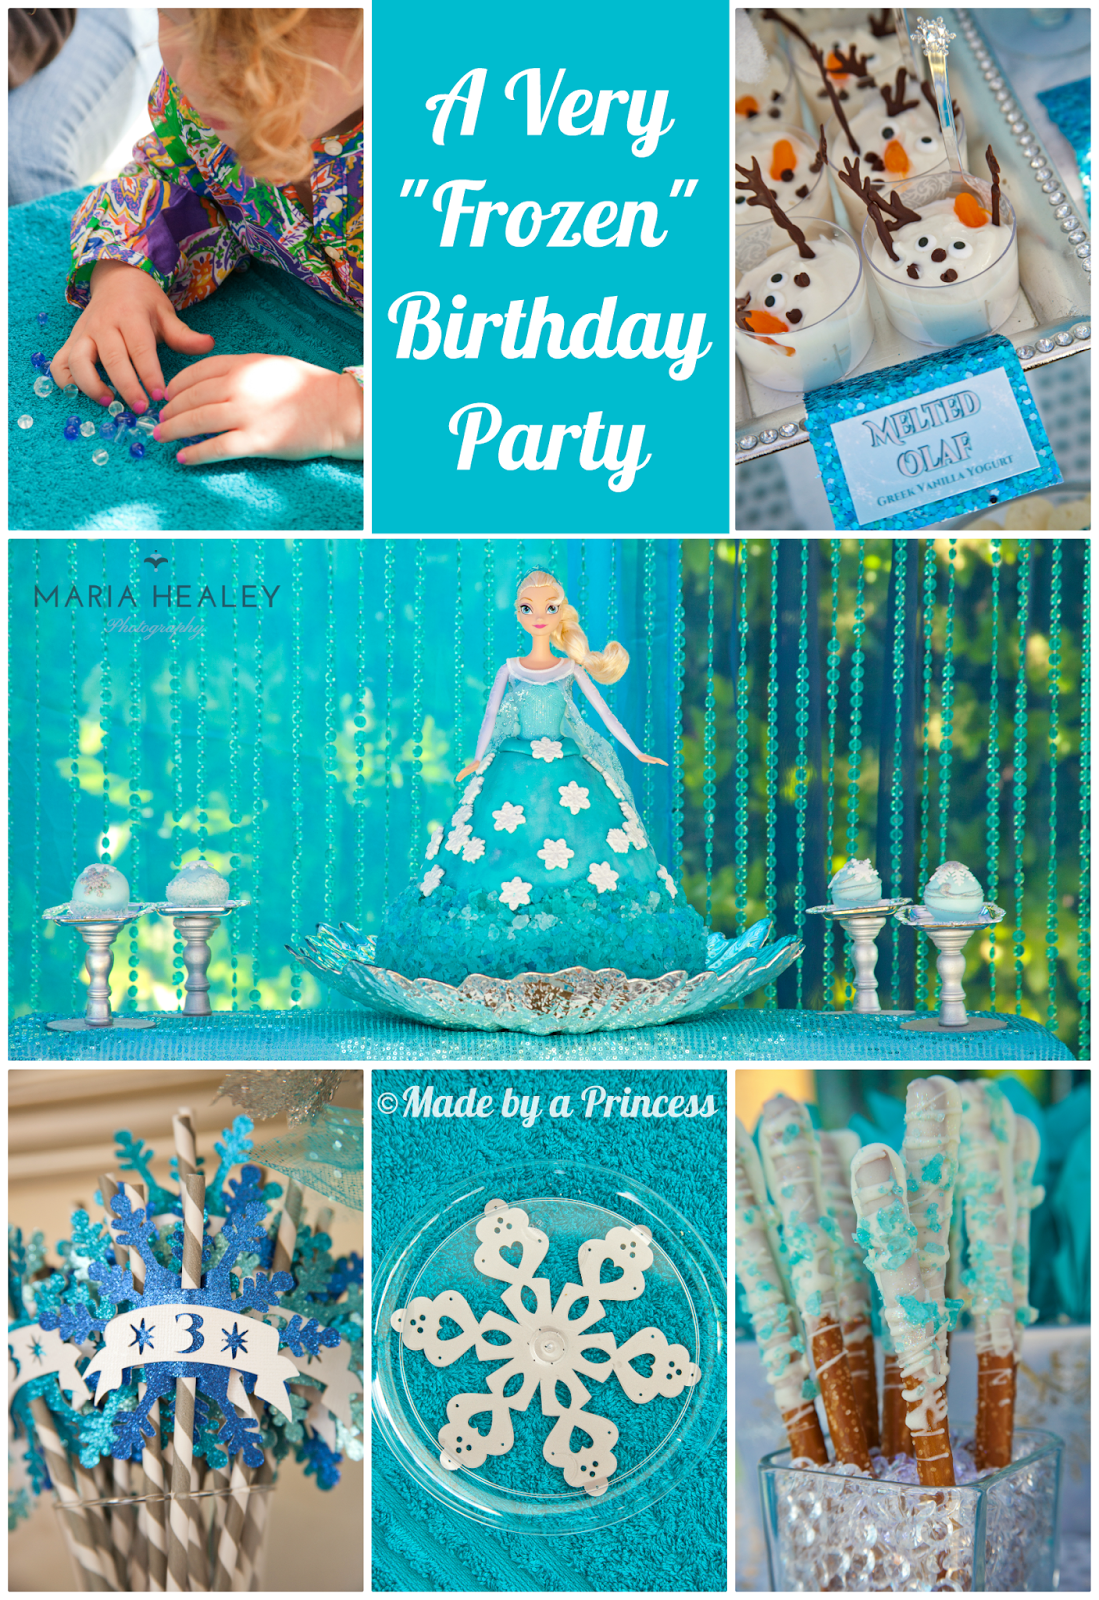 "{Real Party} Frozen Birthday Party Made by a Princess Parties in Style ""Frozen"" Inspired"